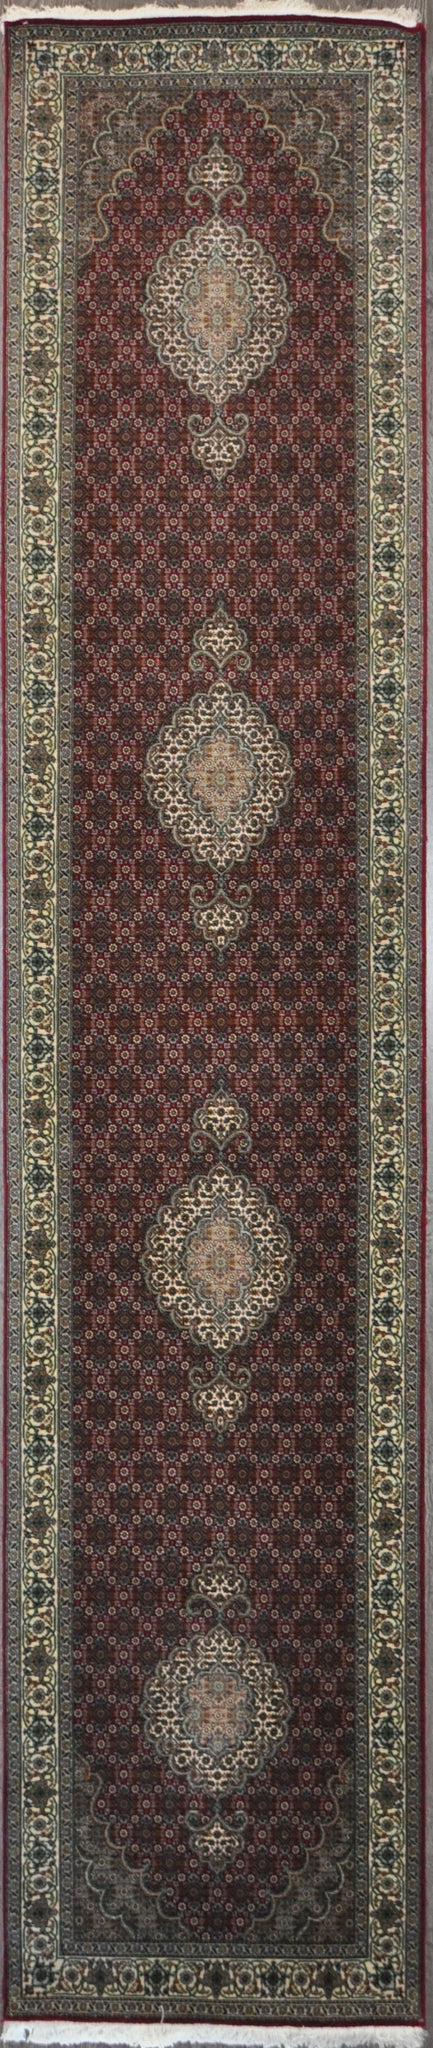 2.8x13.4 tabriz fish runner 50 Raj #32719